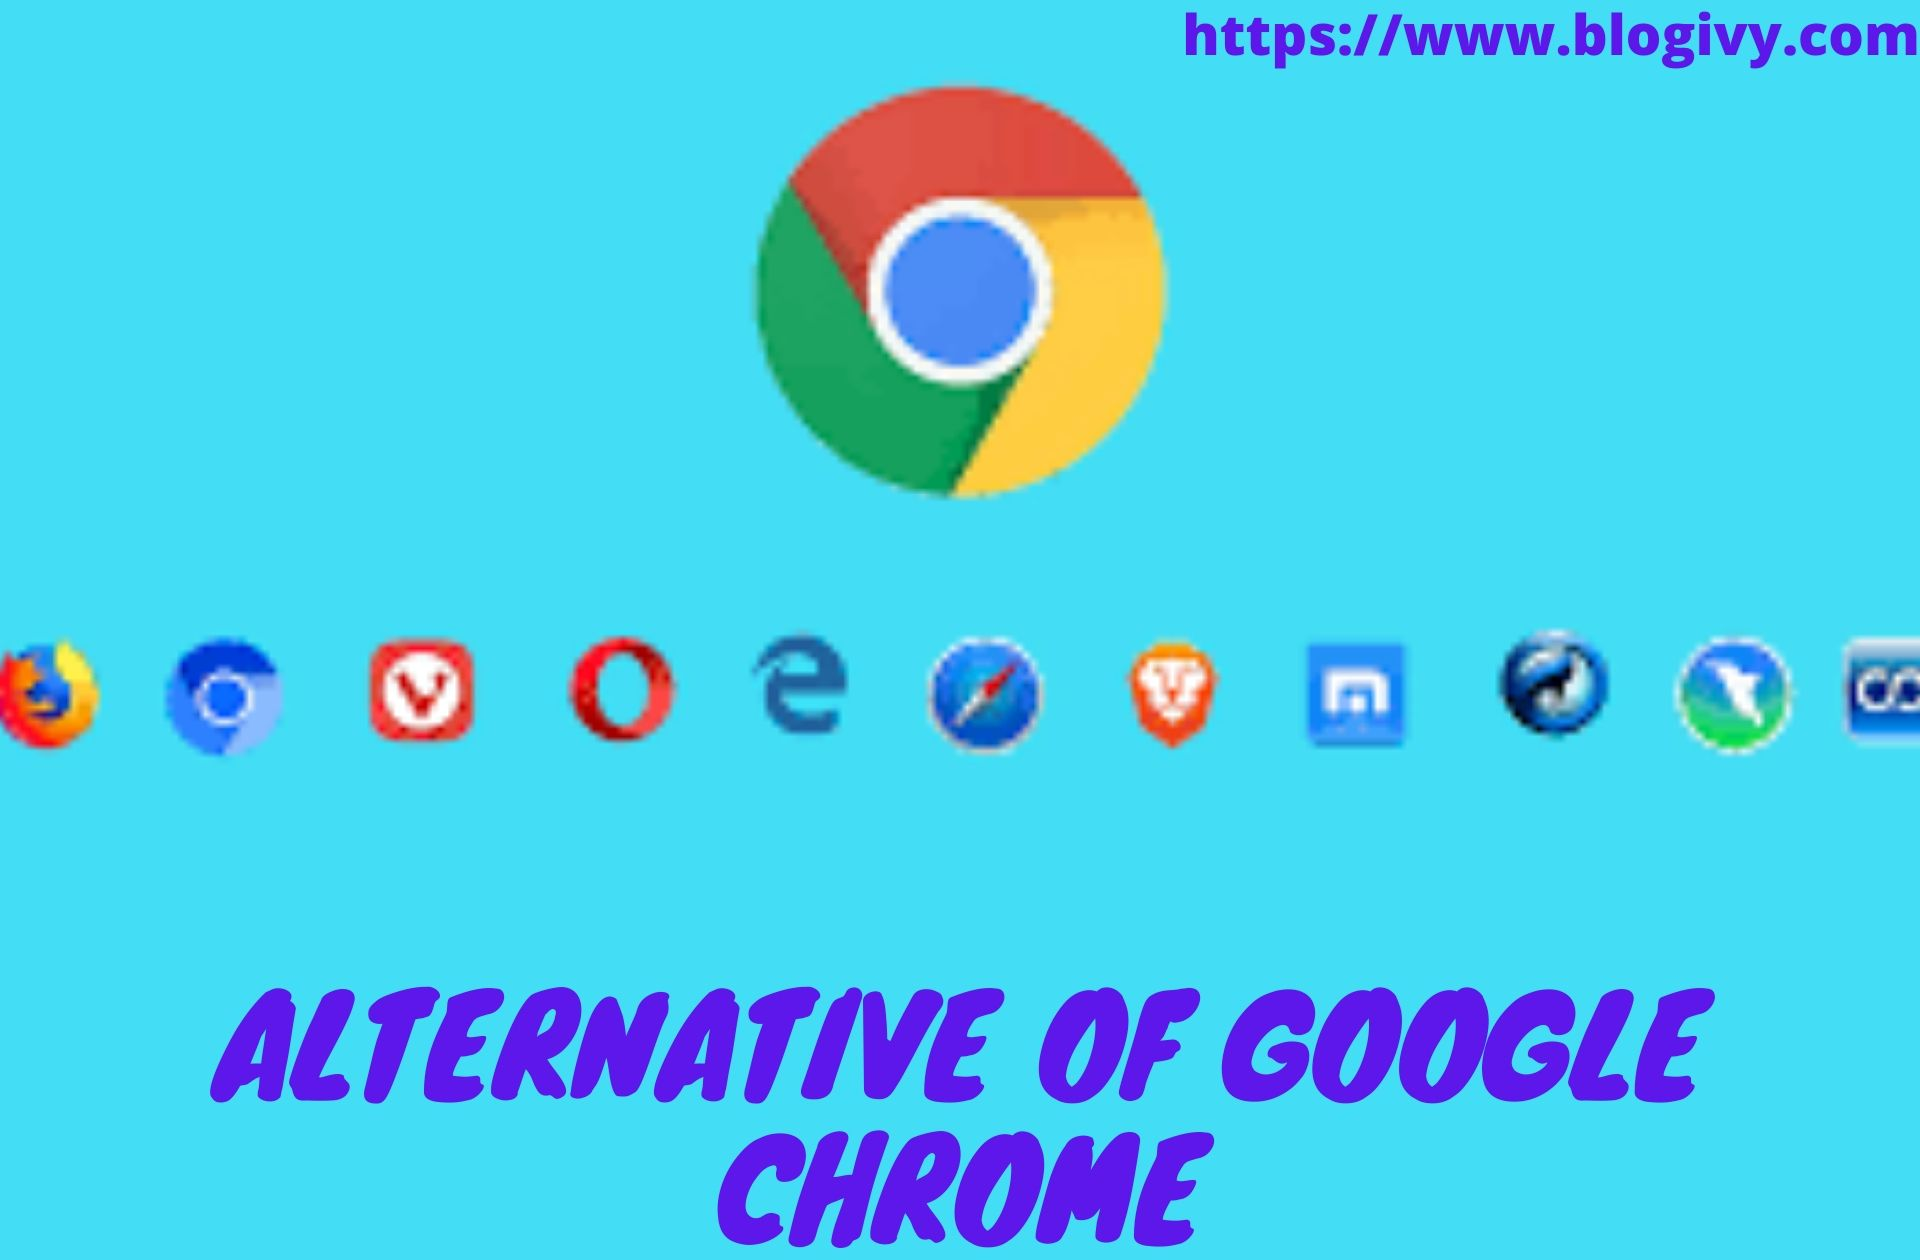 alternative of google chrome